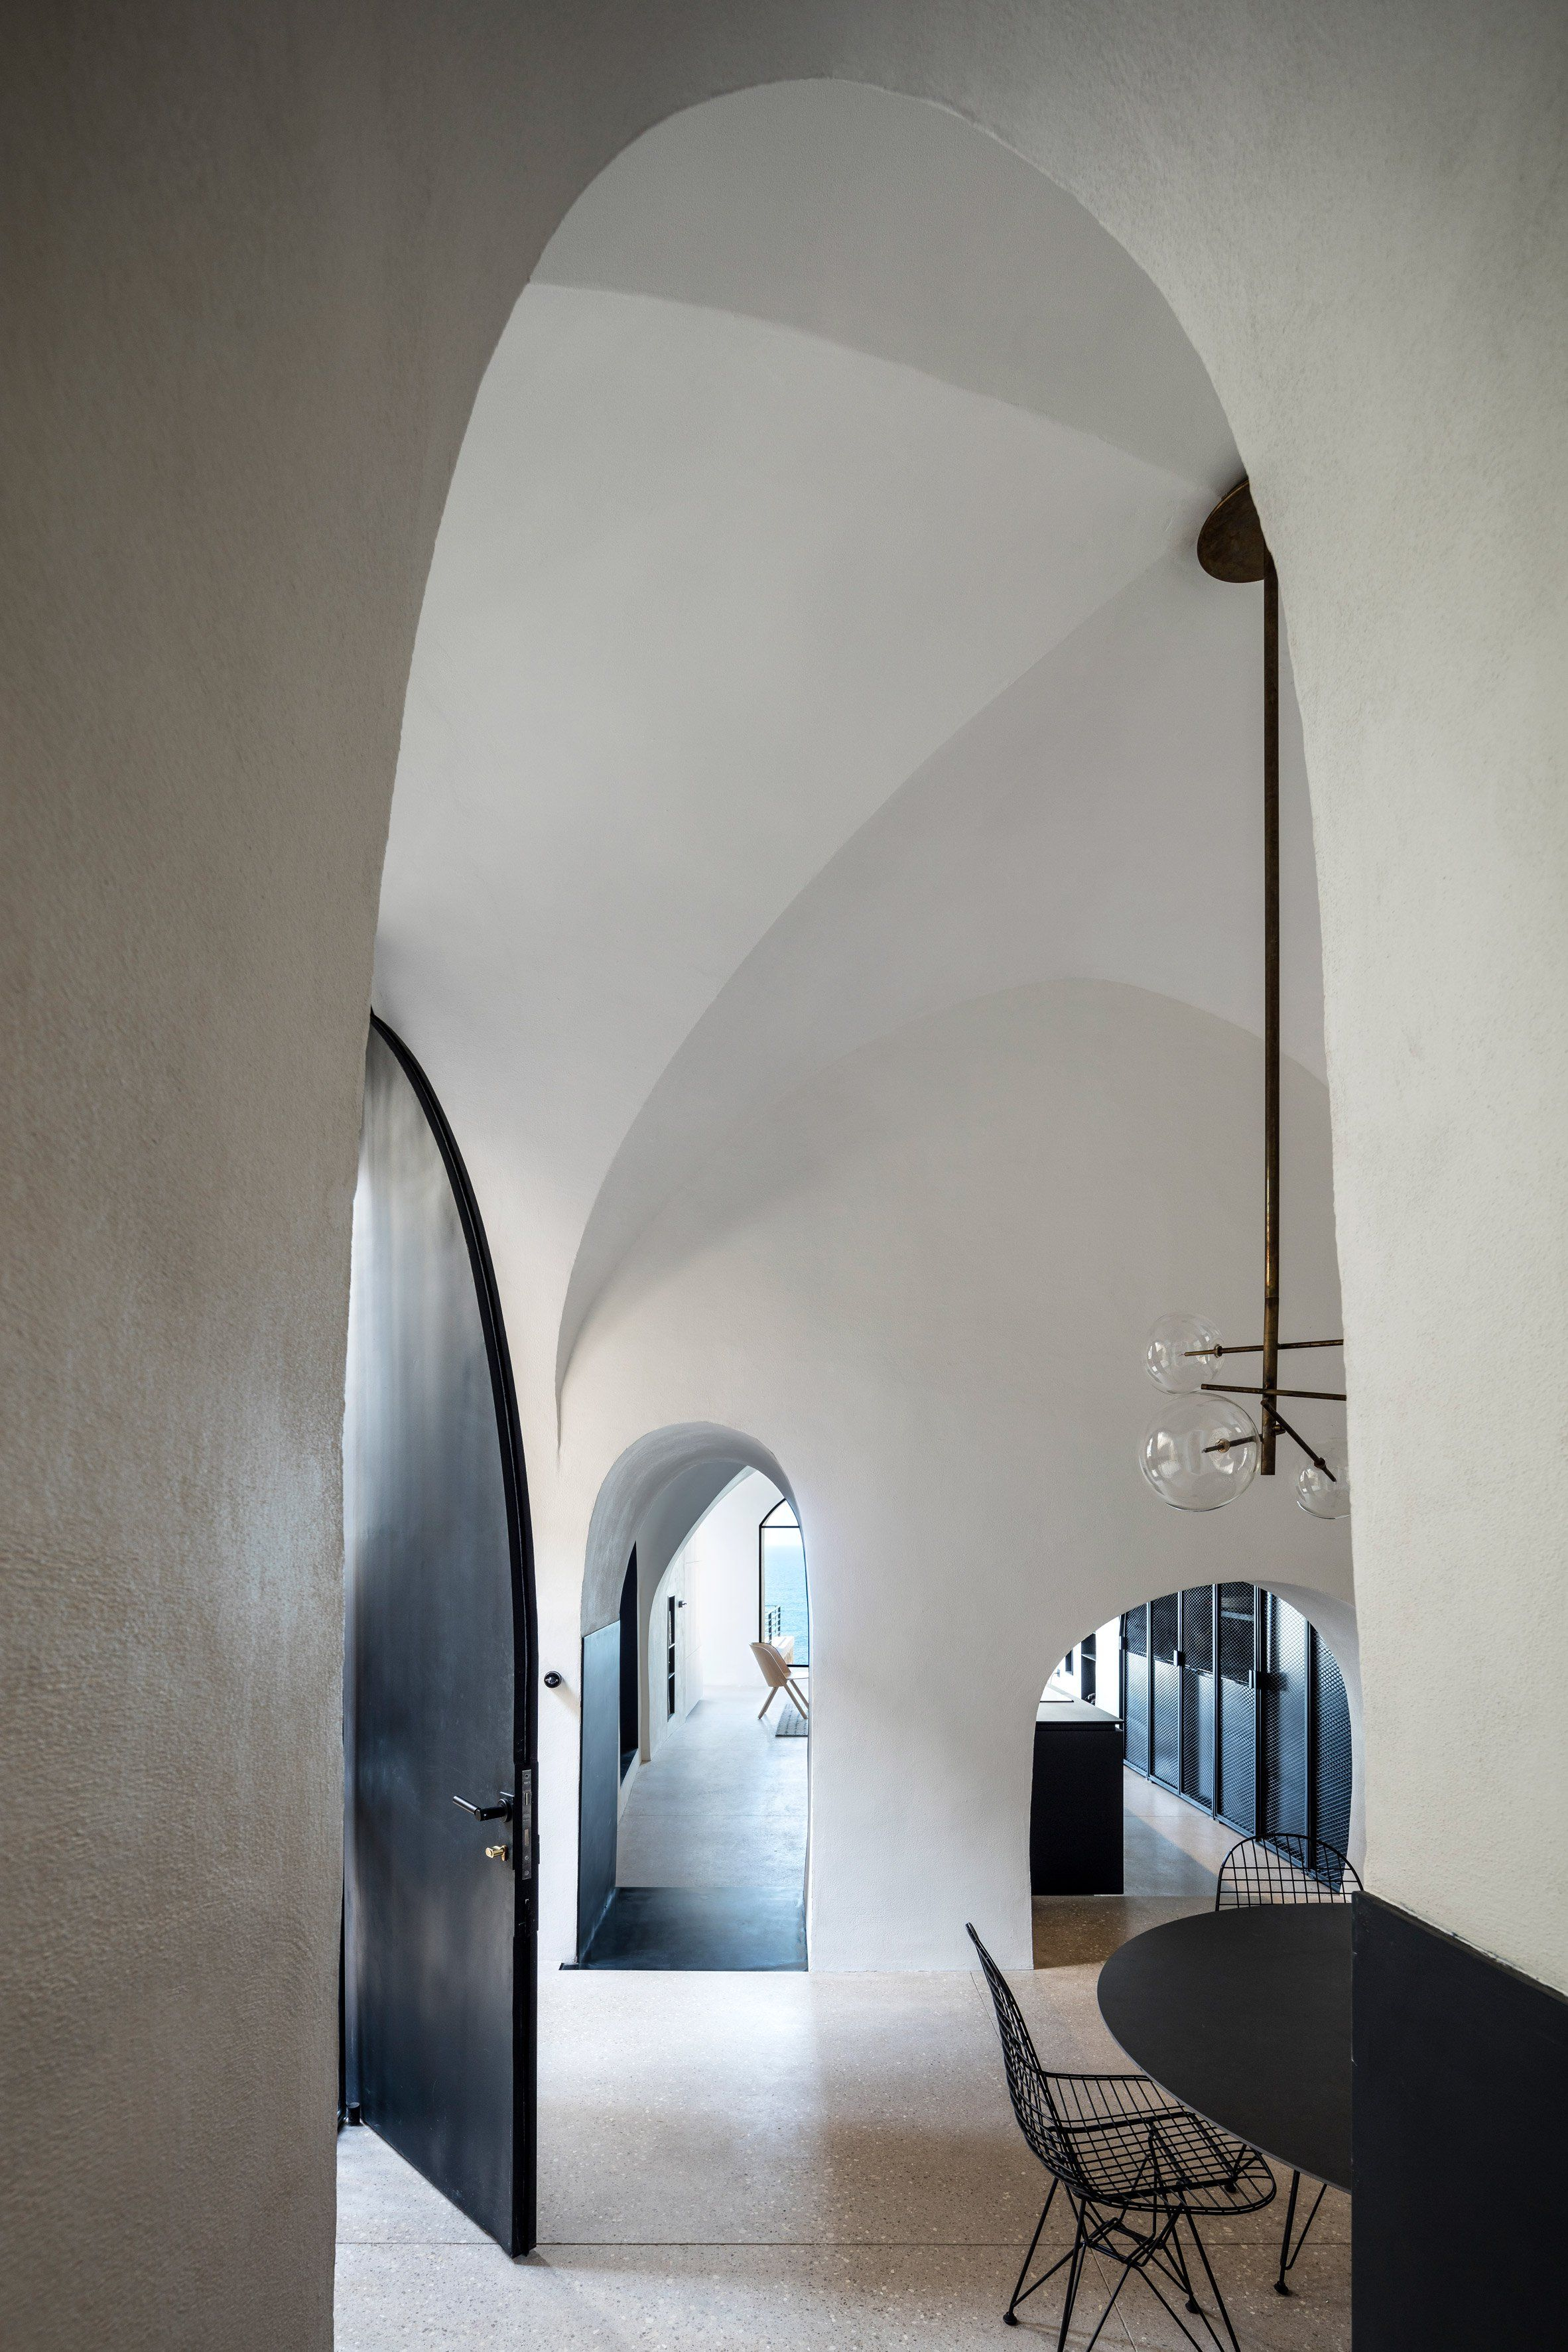 Pitsou Kedem Has Updated An Apartment In The Ancient Port Of Jaffa Tel Aviv Adding Arched Windows And Door Fr Architecture Interior Architecture Pitsou Kedem